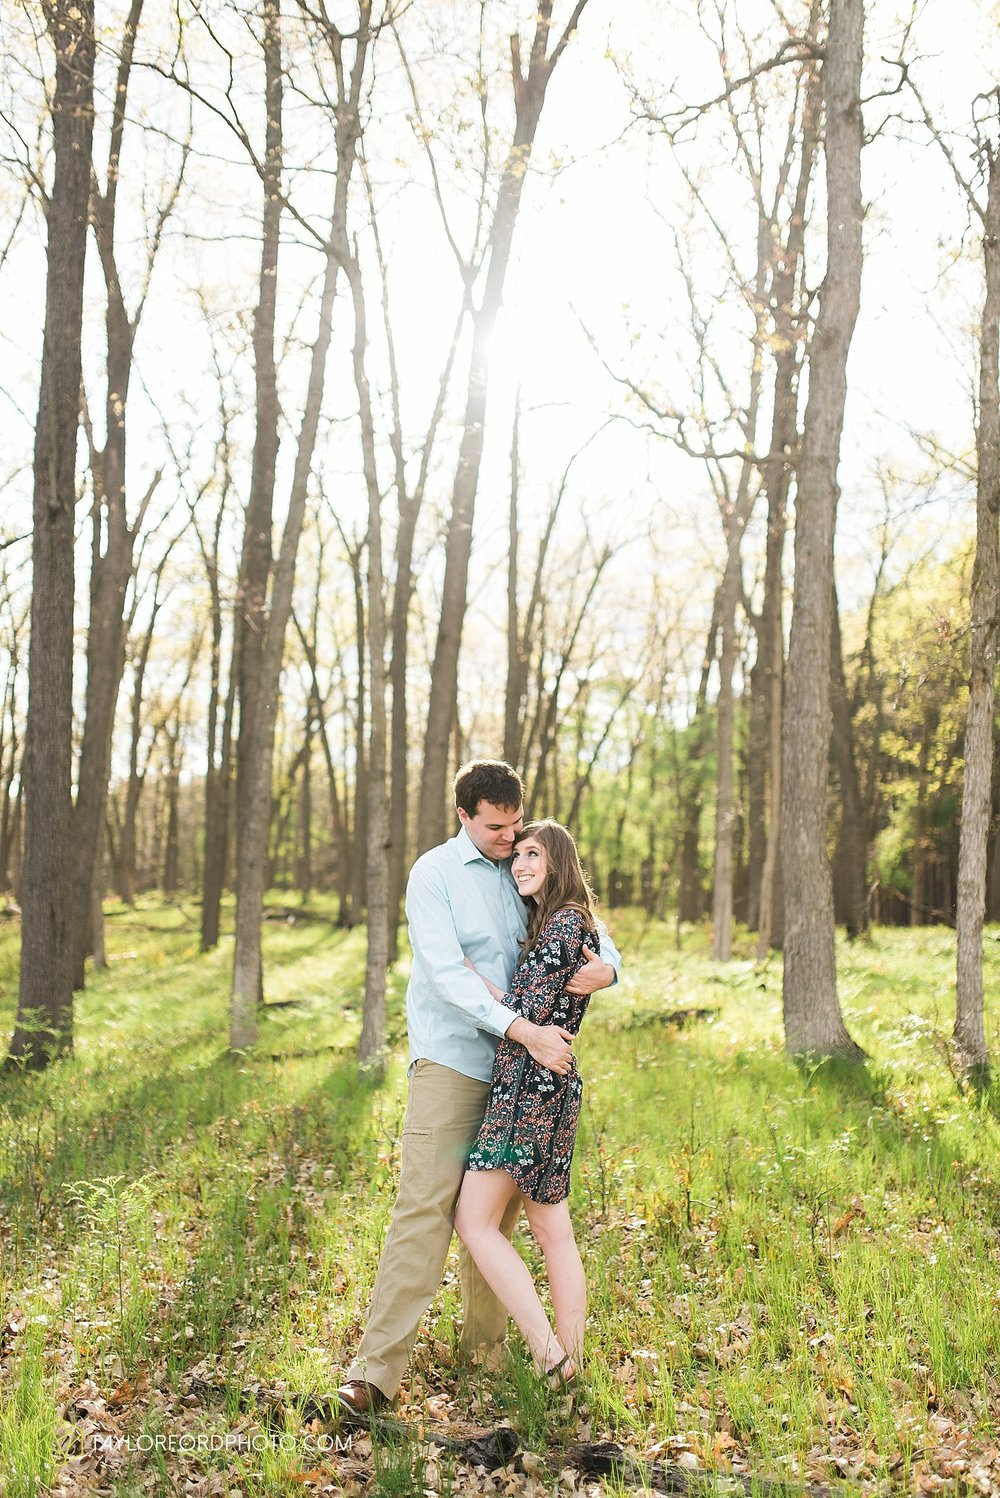 toledo-ohio-engagement-wedding-photographer-taylor-ford-photography-oaks-opening-metro-park-botanical-gardens24.jpg